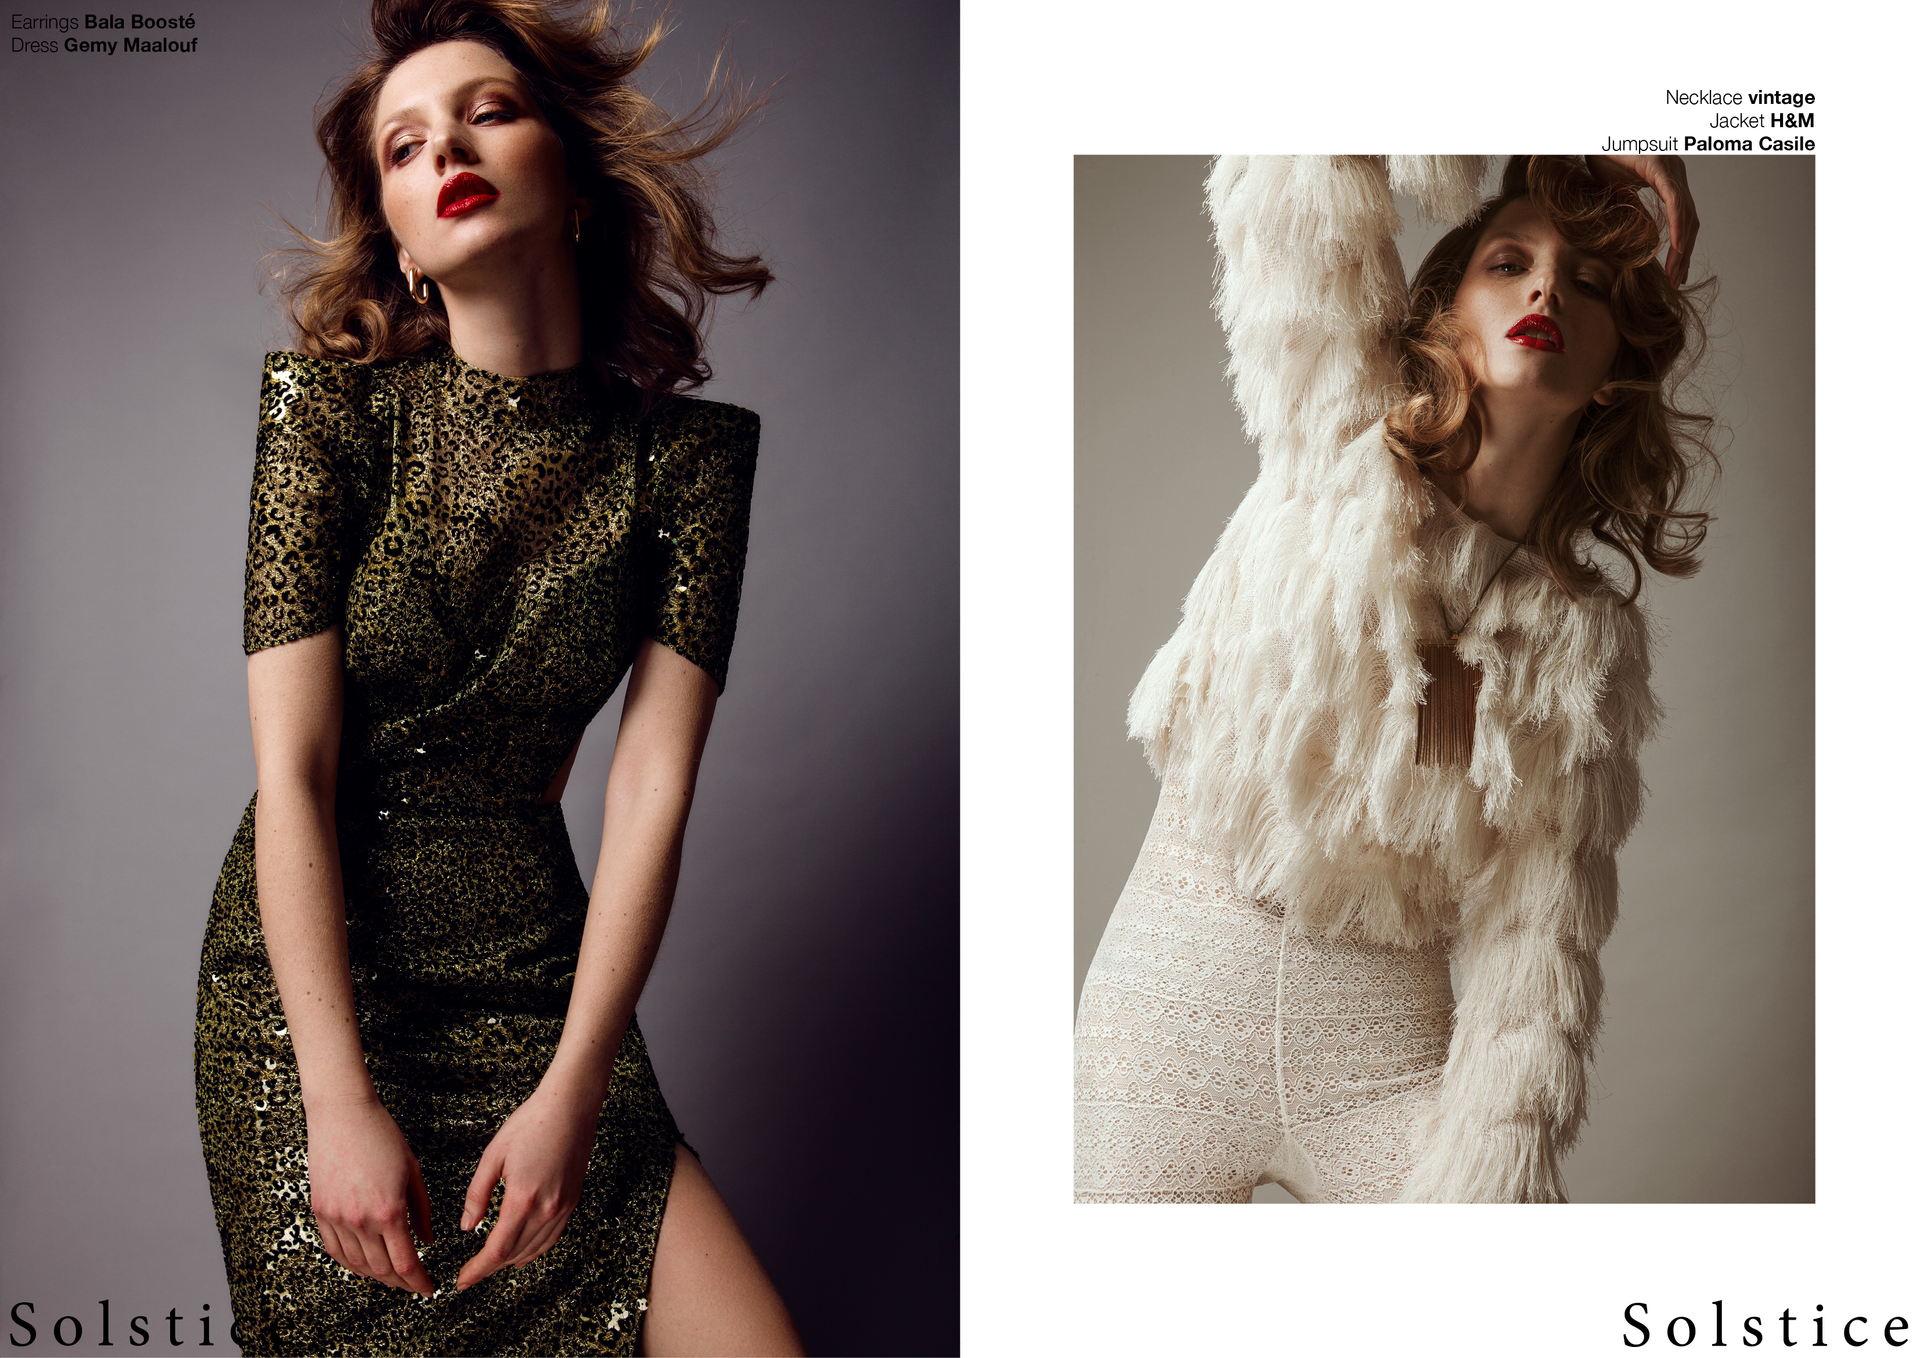 Gregory Boussac Webitorial5.png